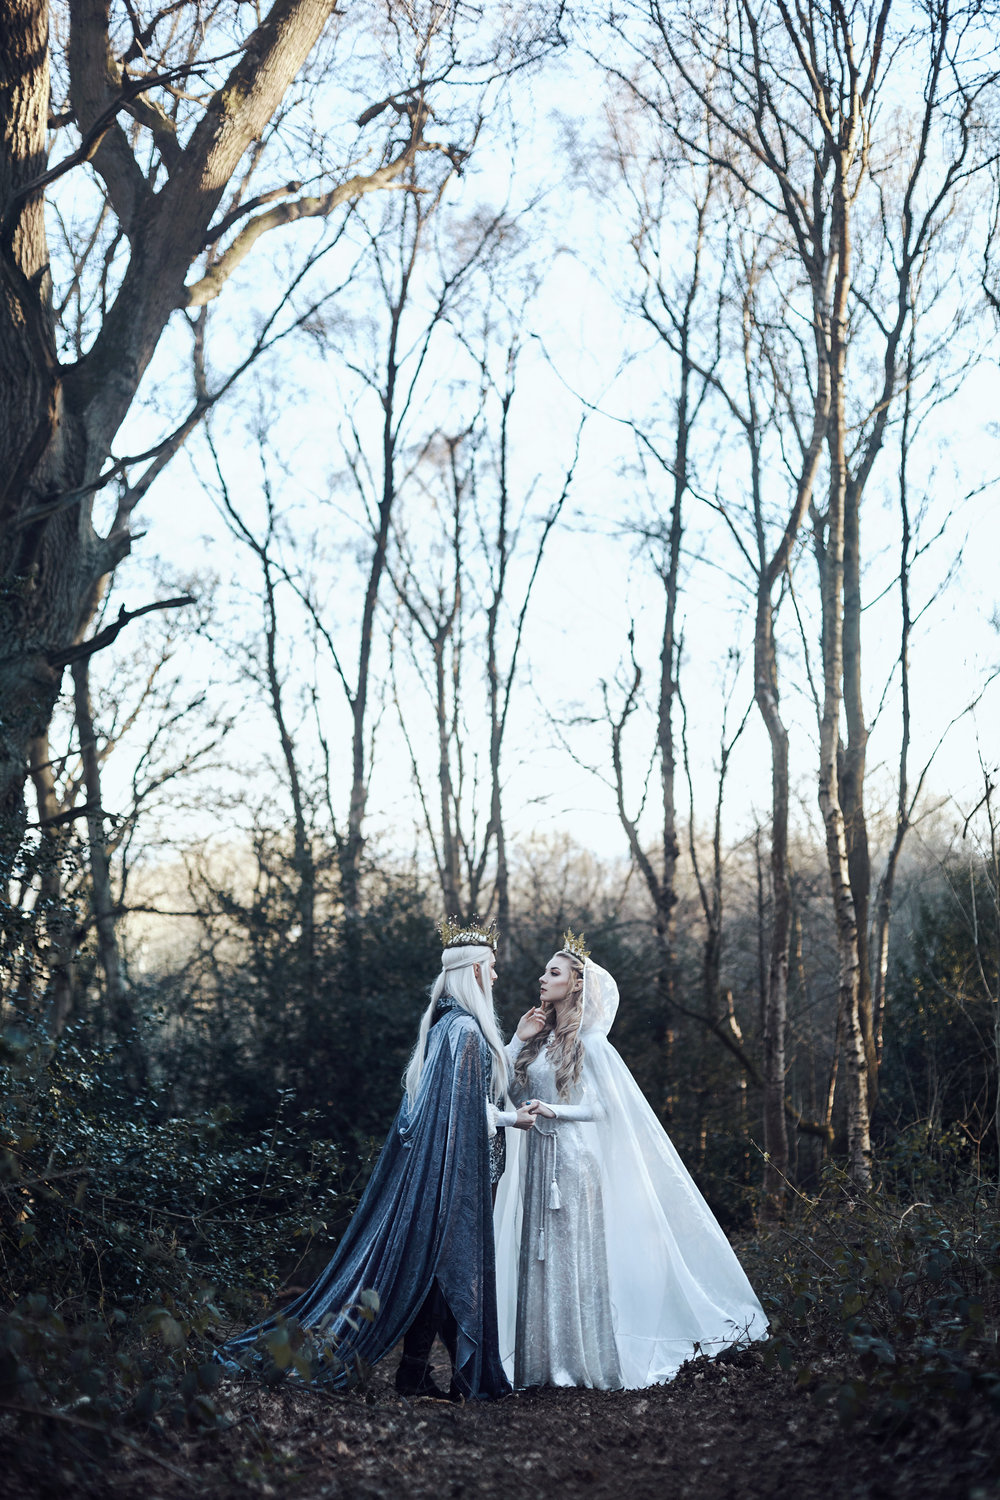 bella_kotak_fairytale-fashion-fantasy-photography-tolkien-lord-of-the-rings-inspired-shotover-oxford.jpg